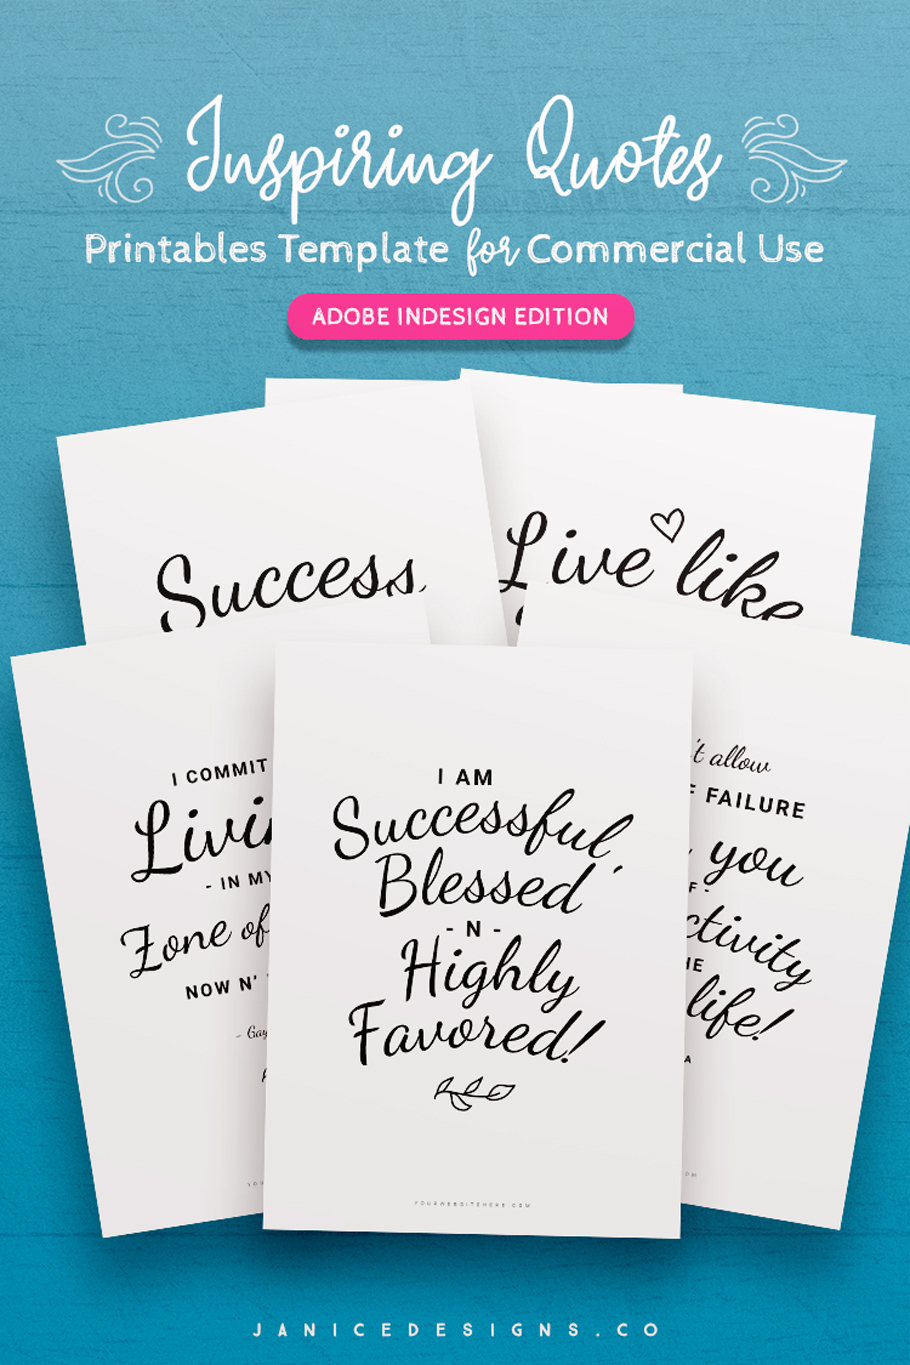 7-in-1 Bundle InDesign Templates for Commercial Use example image 7